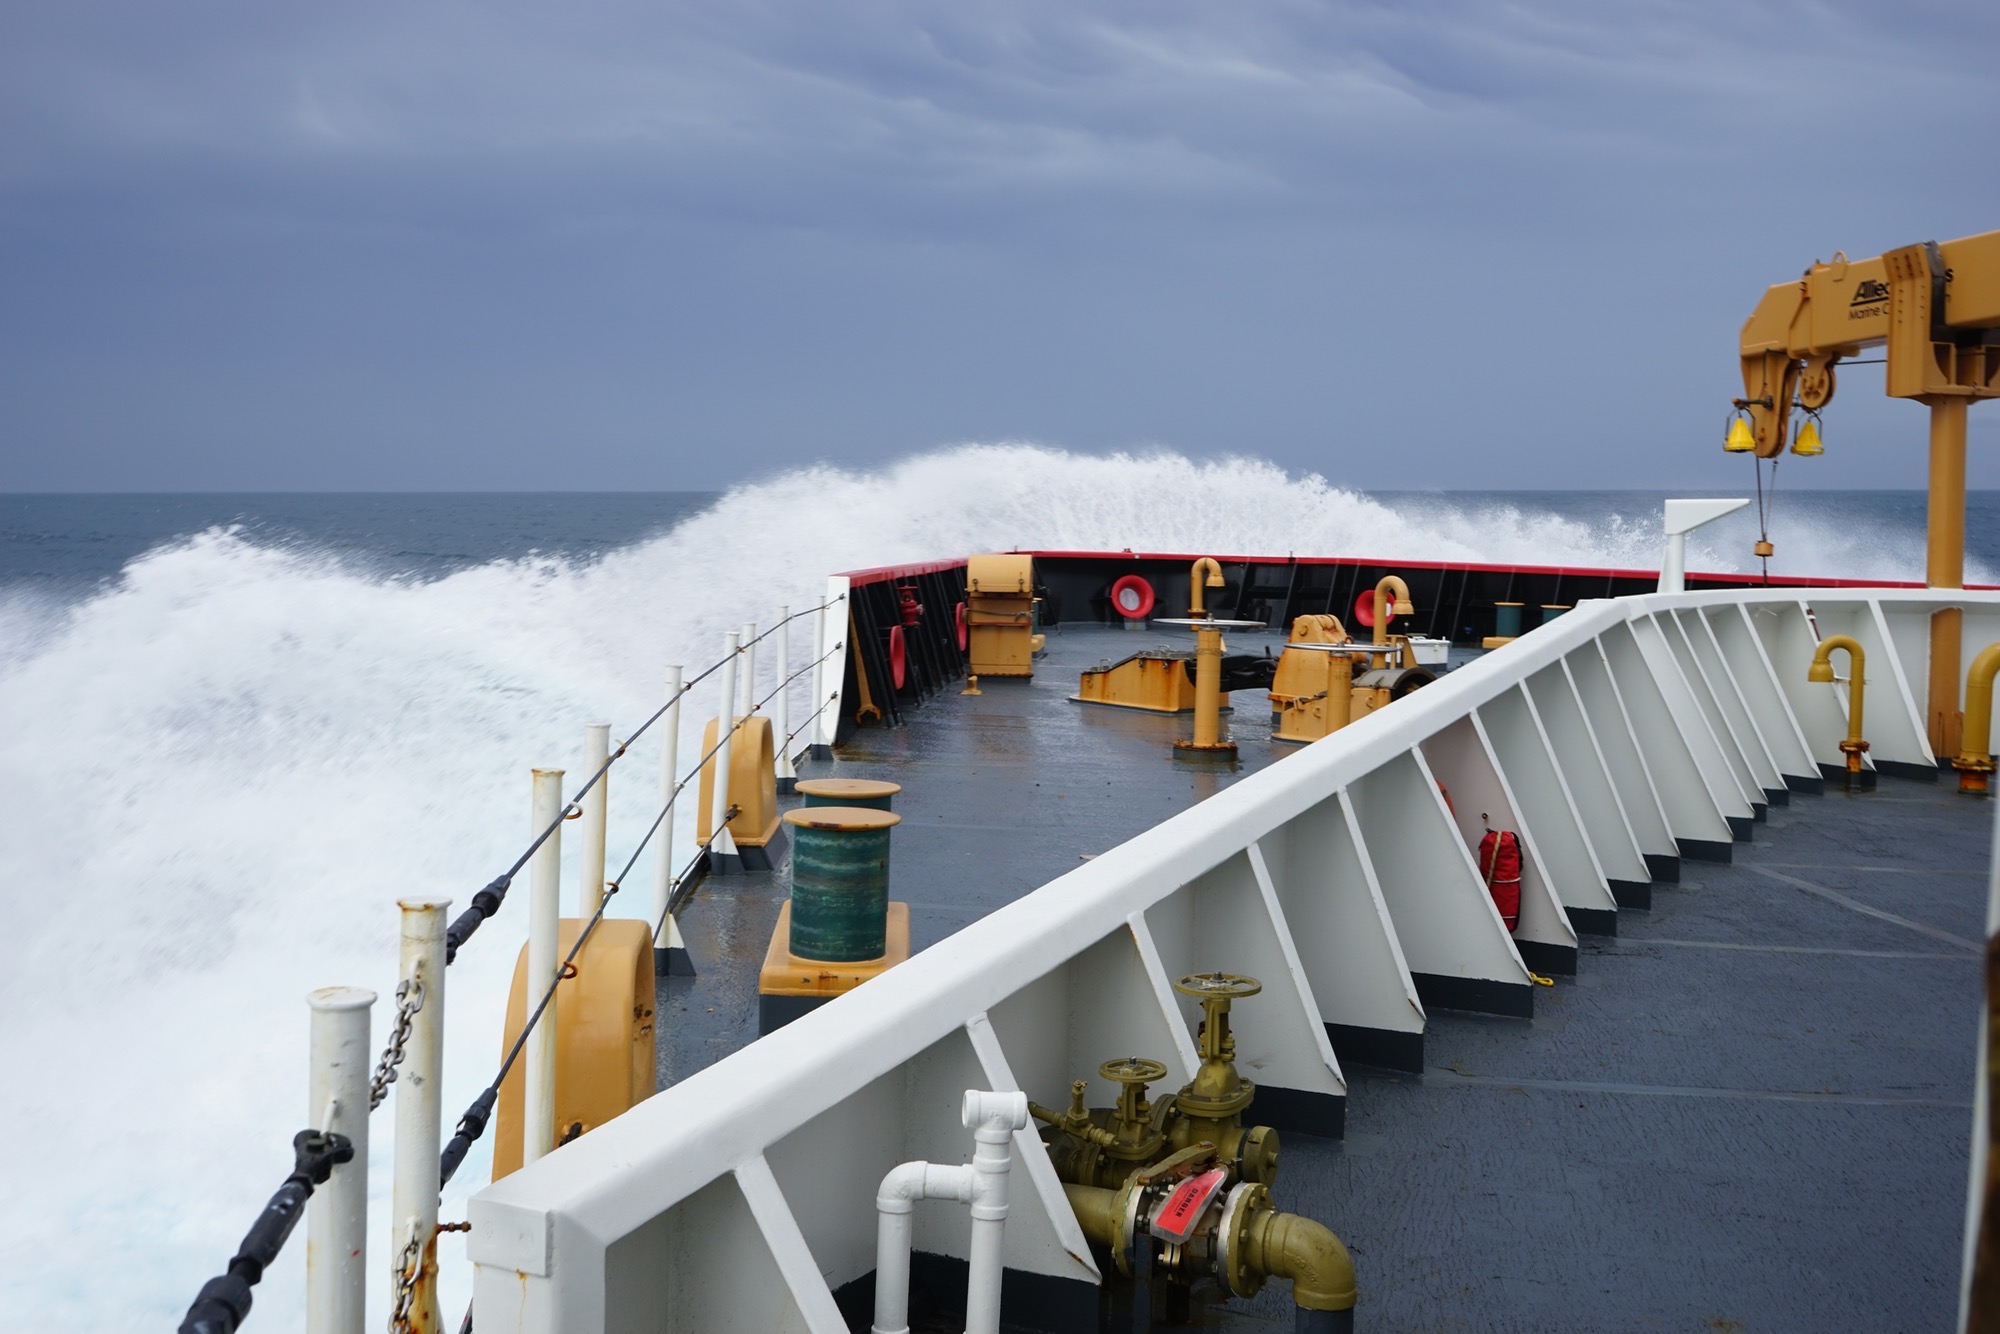 The Coast Guard icebreaker Polar Star takes on heavy seas as it crosses the Southern Ocean enroute to Antarctica.